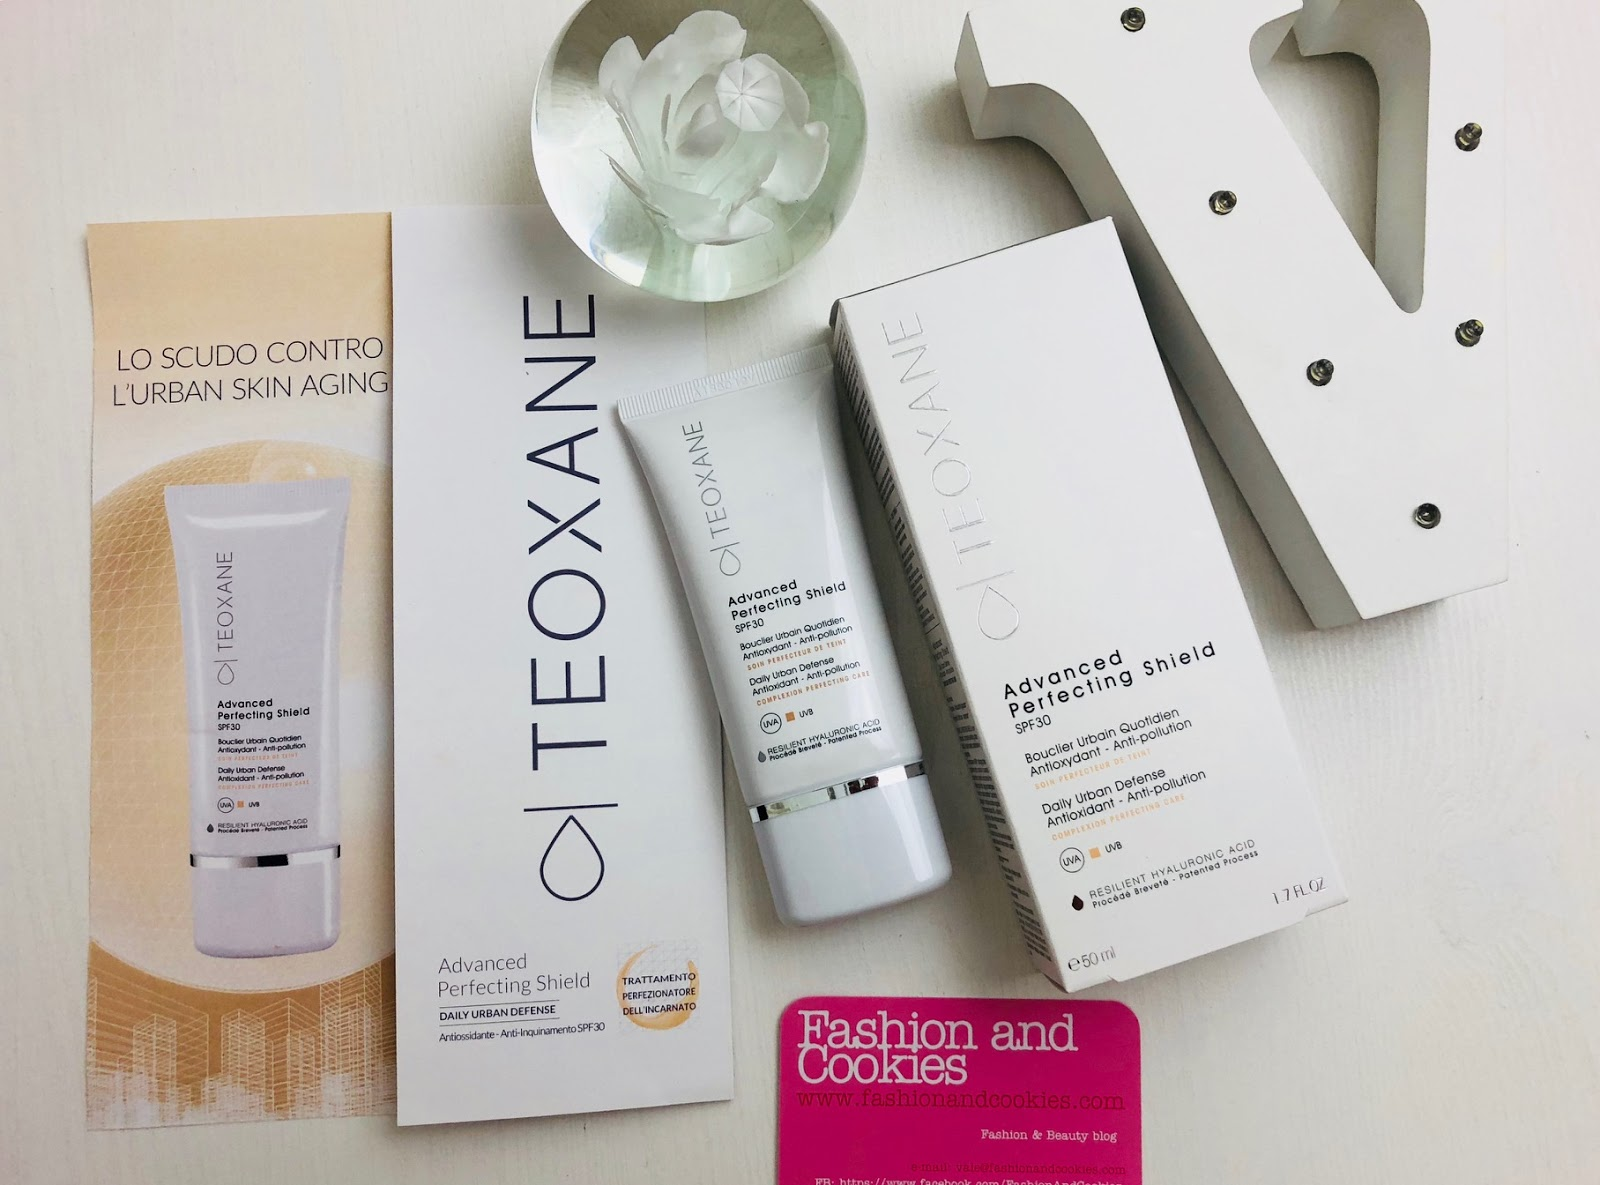 Teoxane Advanced Perfect Shield scudo contro l'urban skin aging su Fashion and Cookies beauty blog, beauty blogger